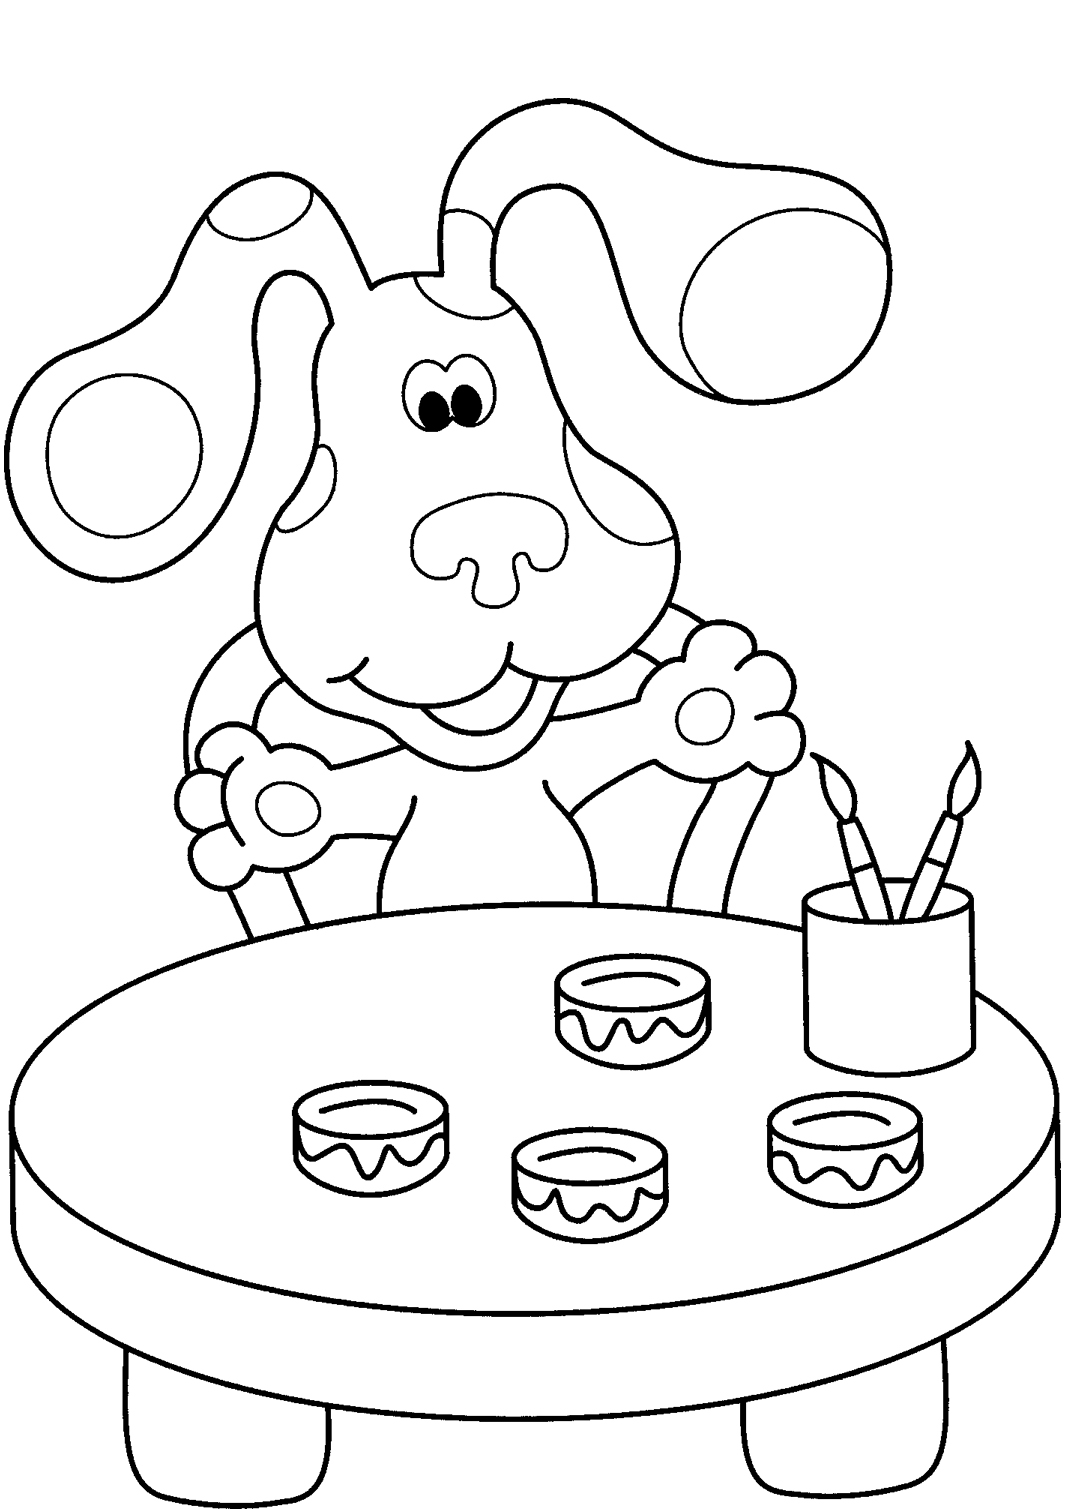 blues clues coloring book free printable blues clues coloring pages for kids clues coloring book blues